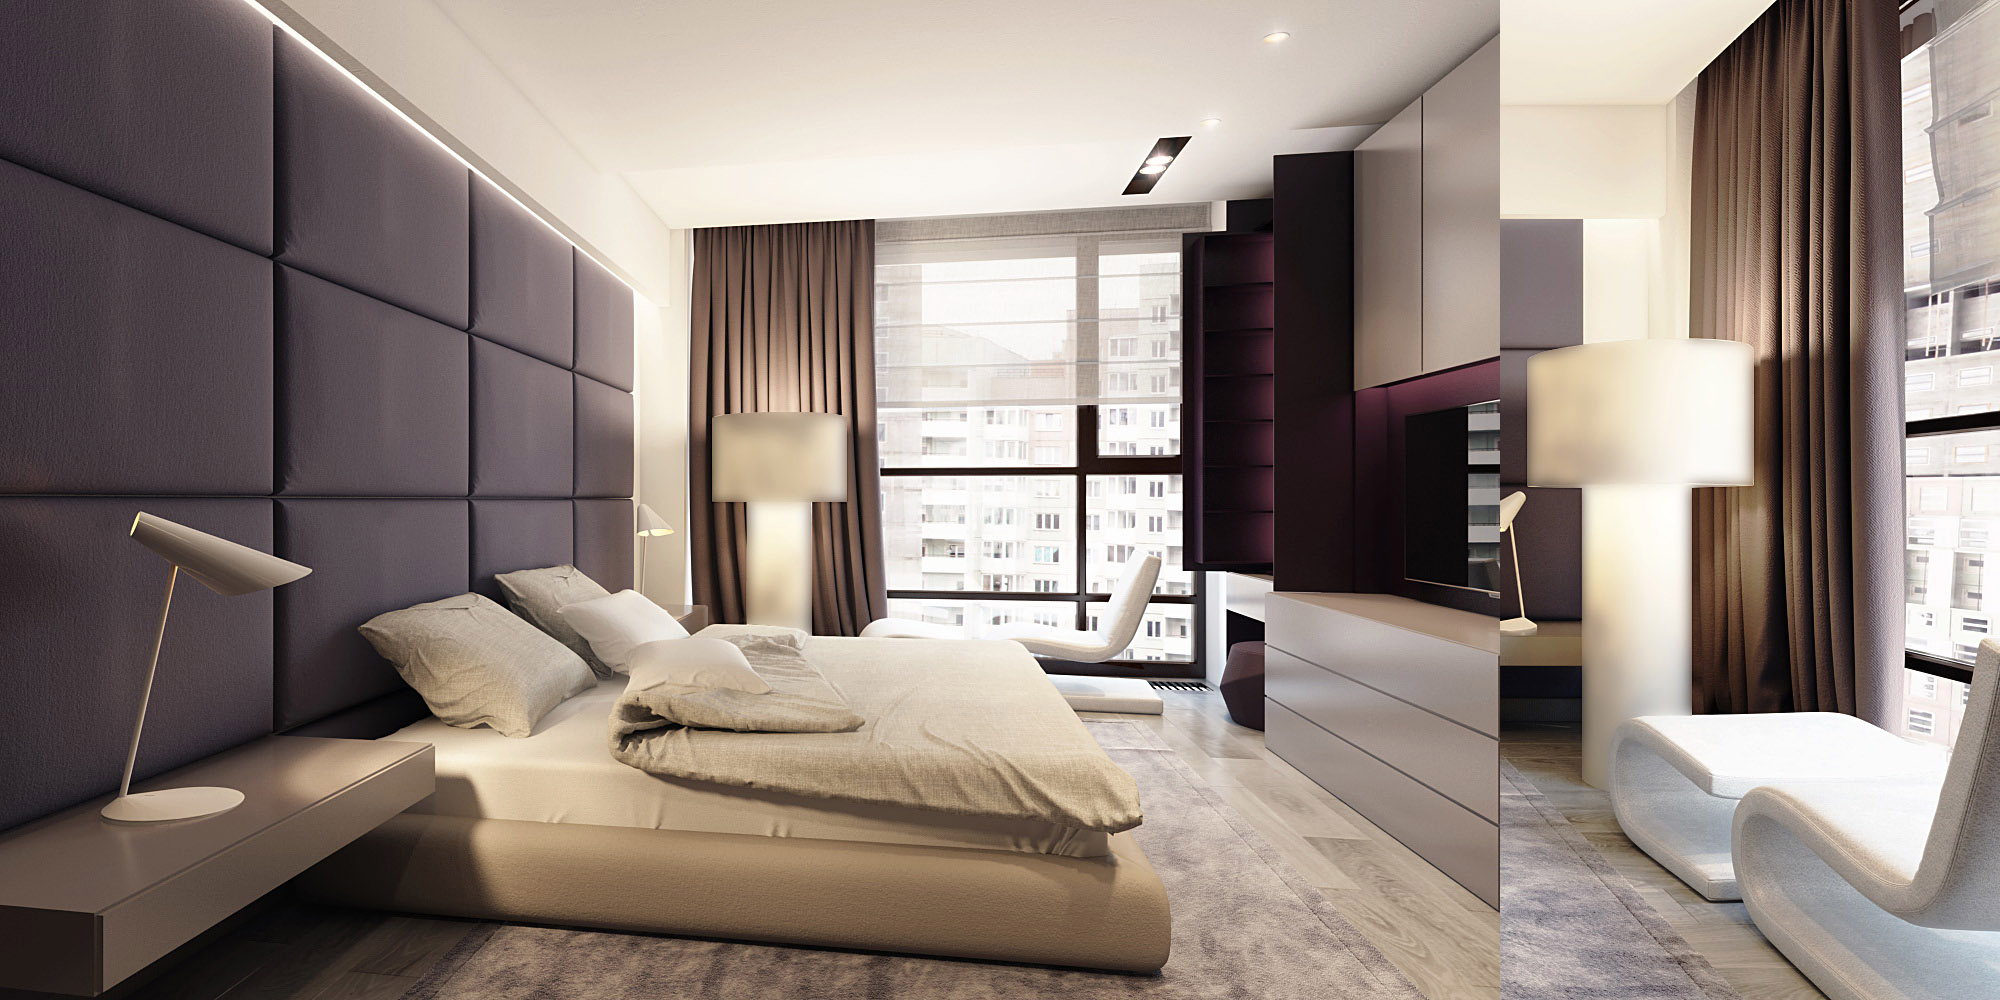 Sophisticated family apartment with rich wood accents - Bedrooms designs ...